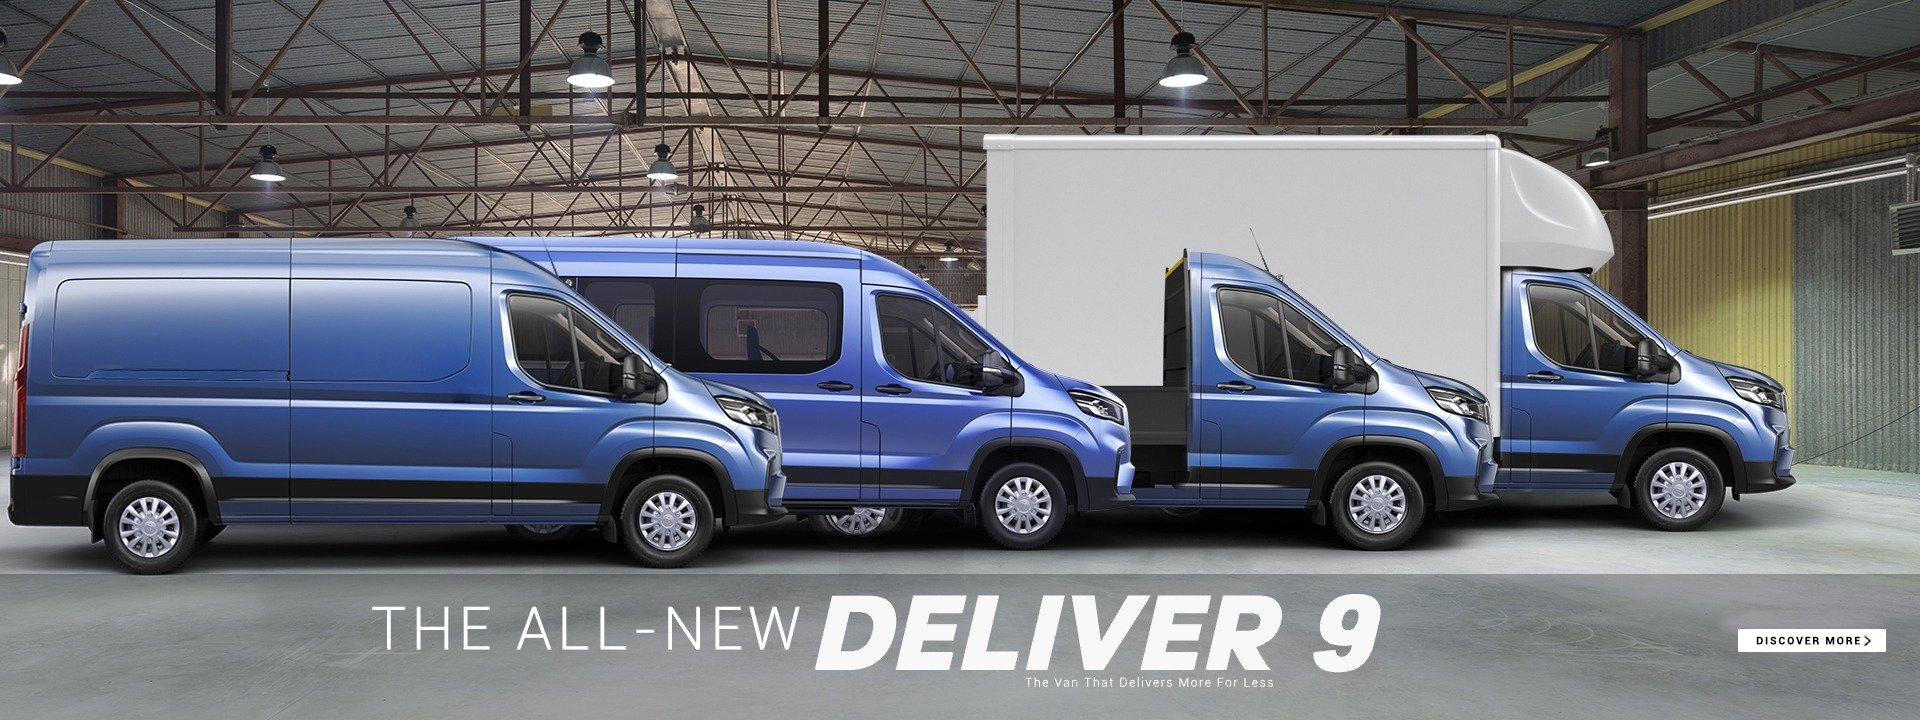 ldv_deliver_9_van_price